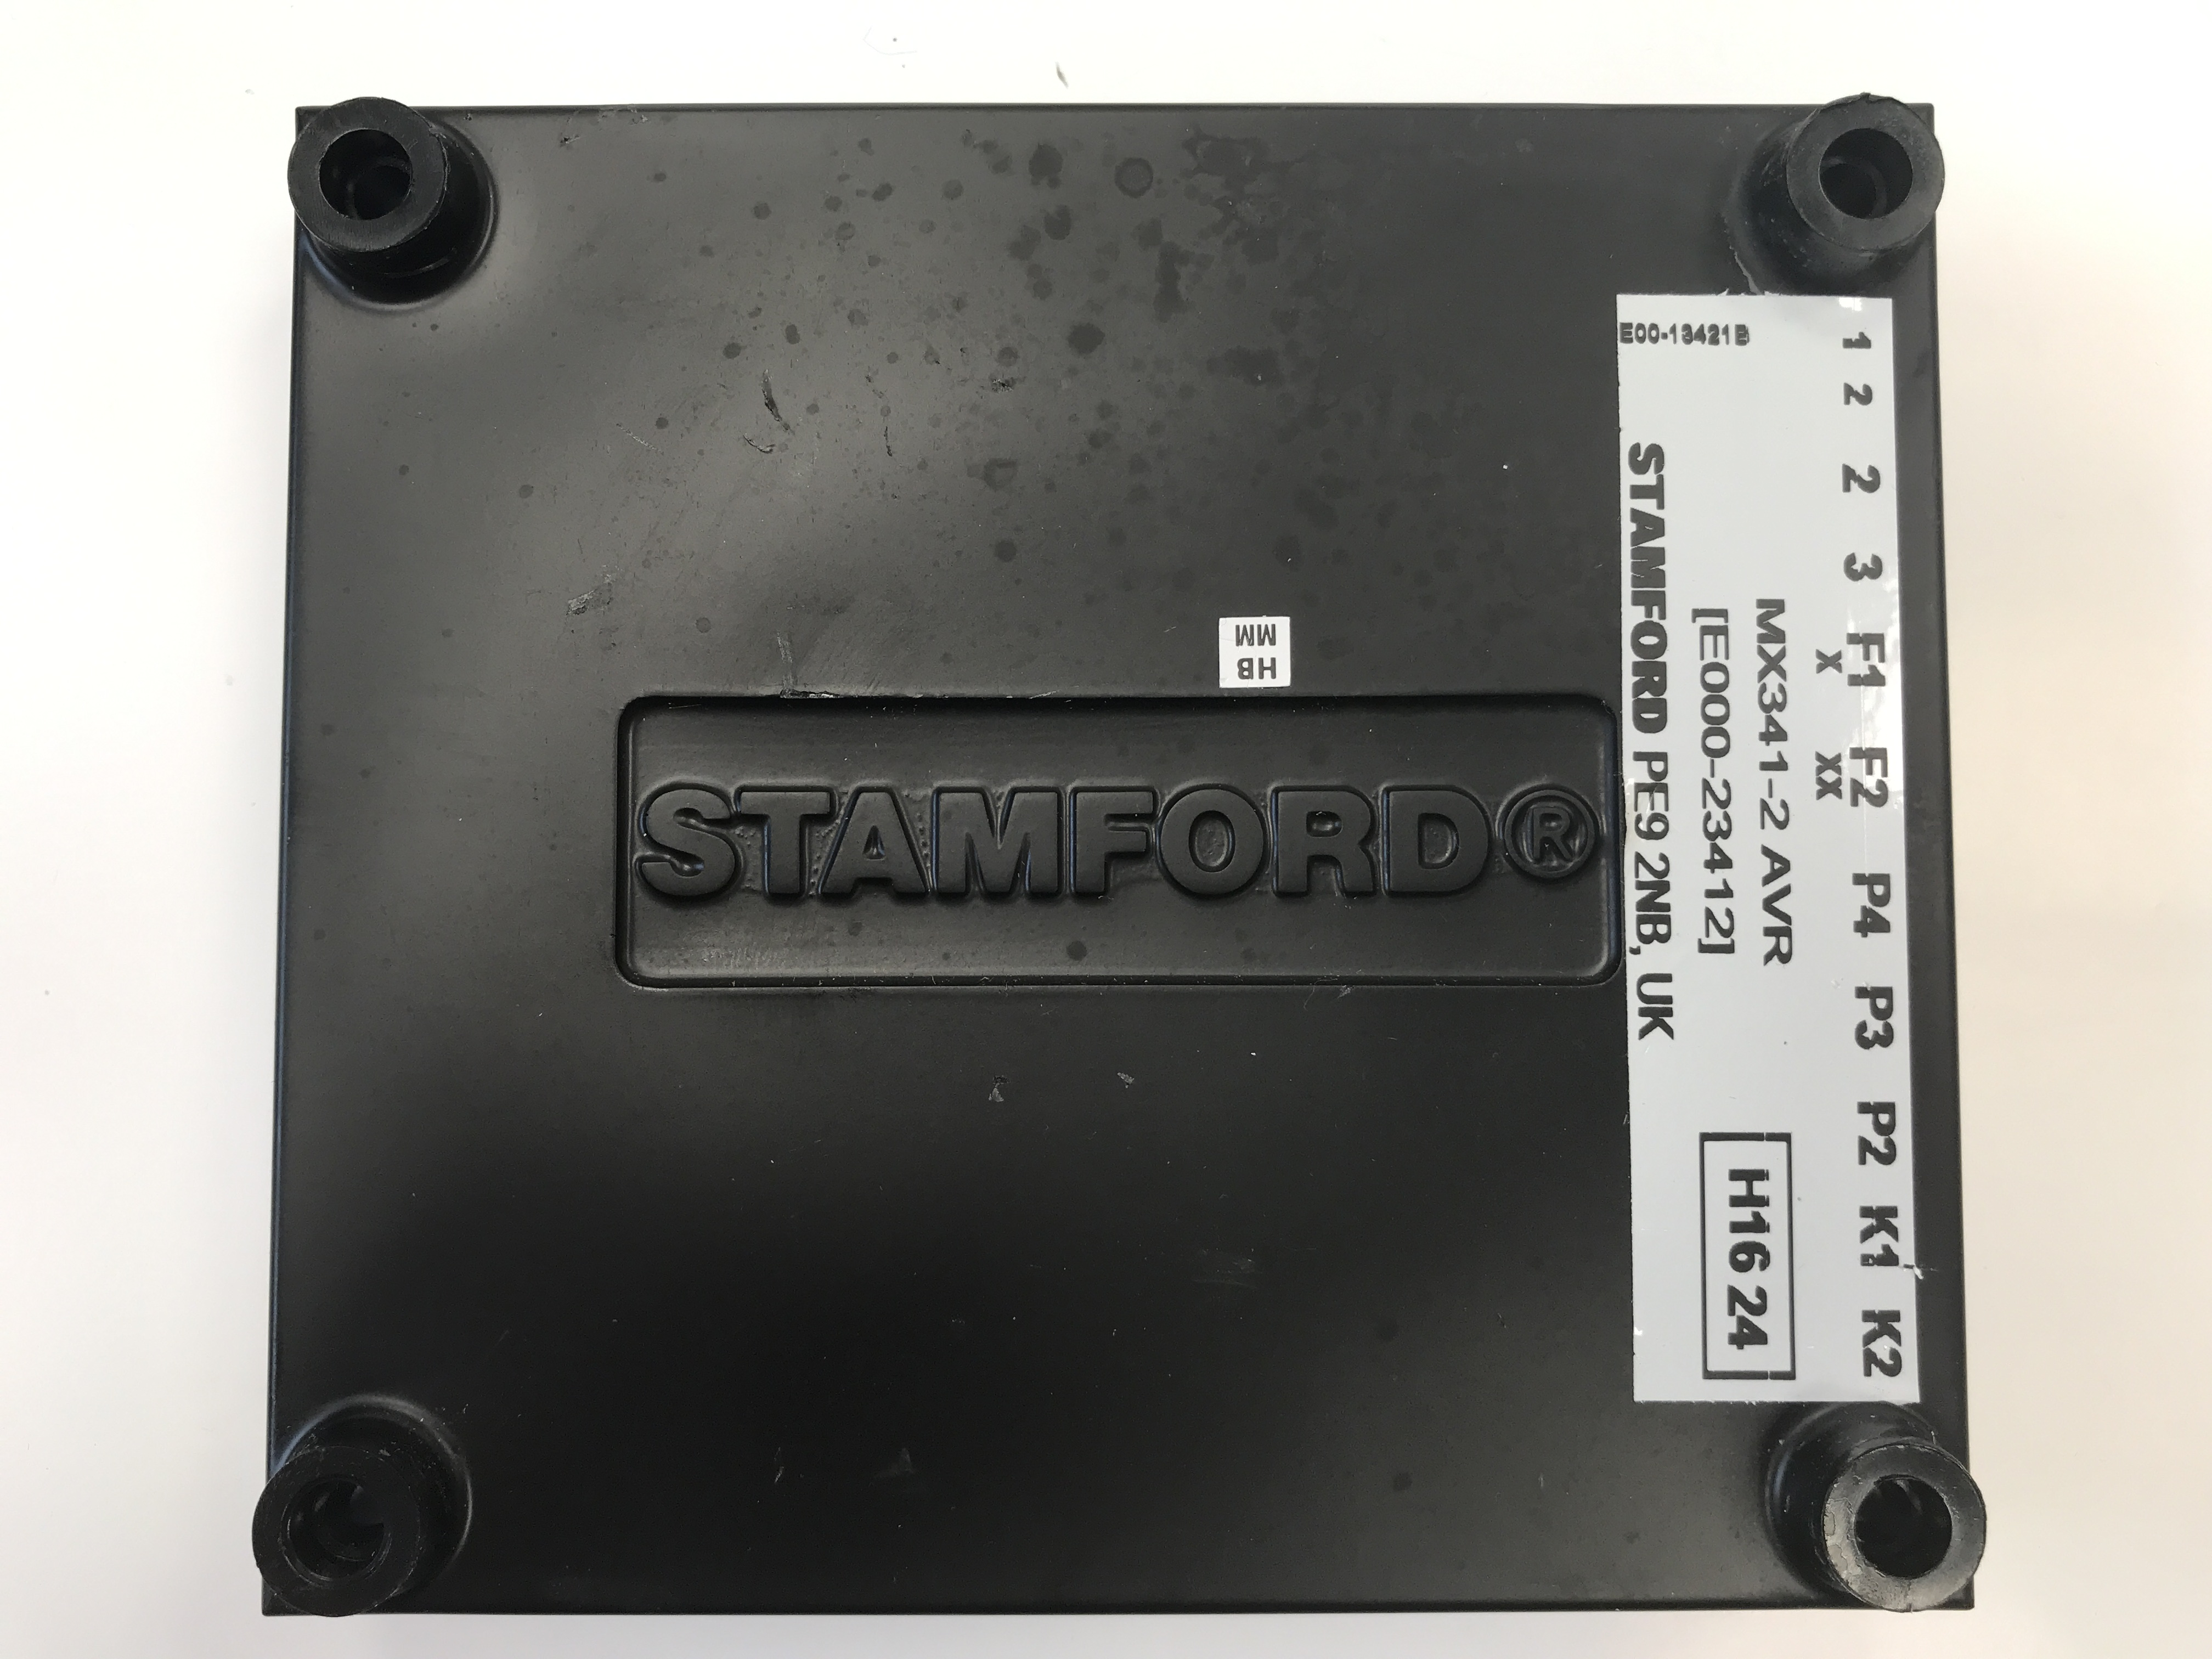 wellandpower-welland-spares-stamford-avr-mx341-IMG_1893.JPG